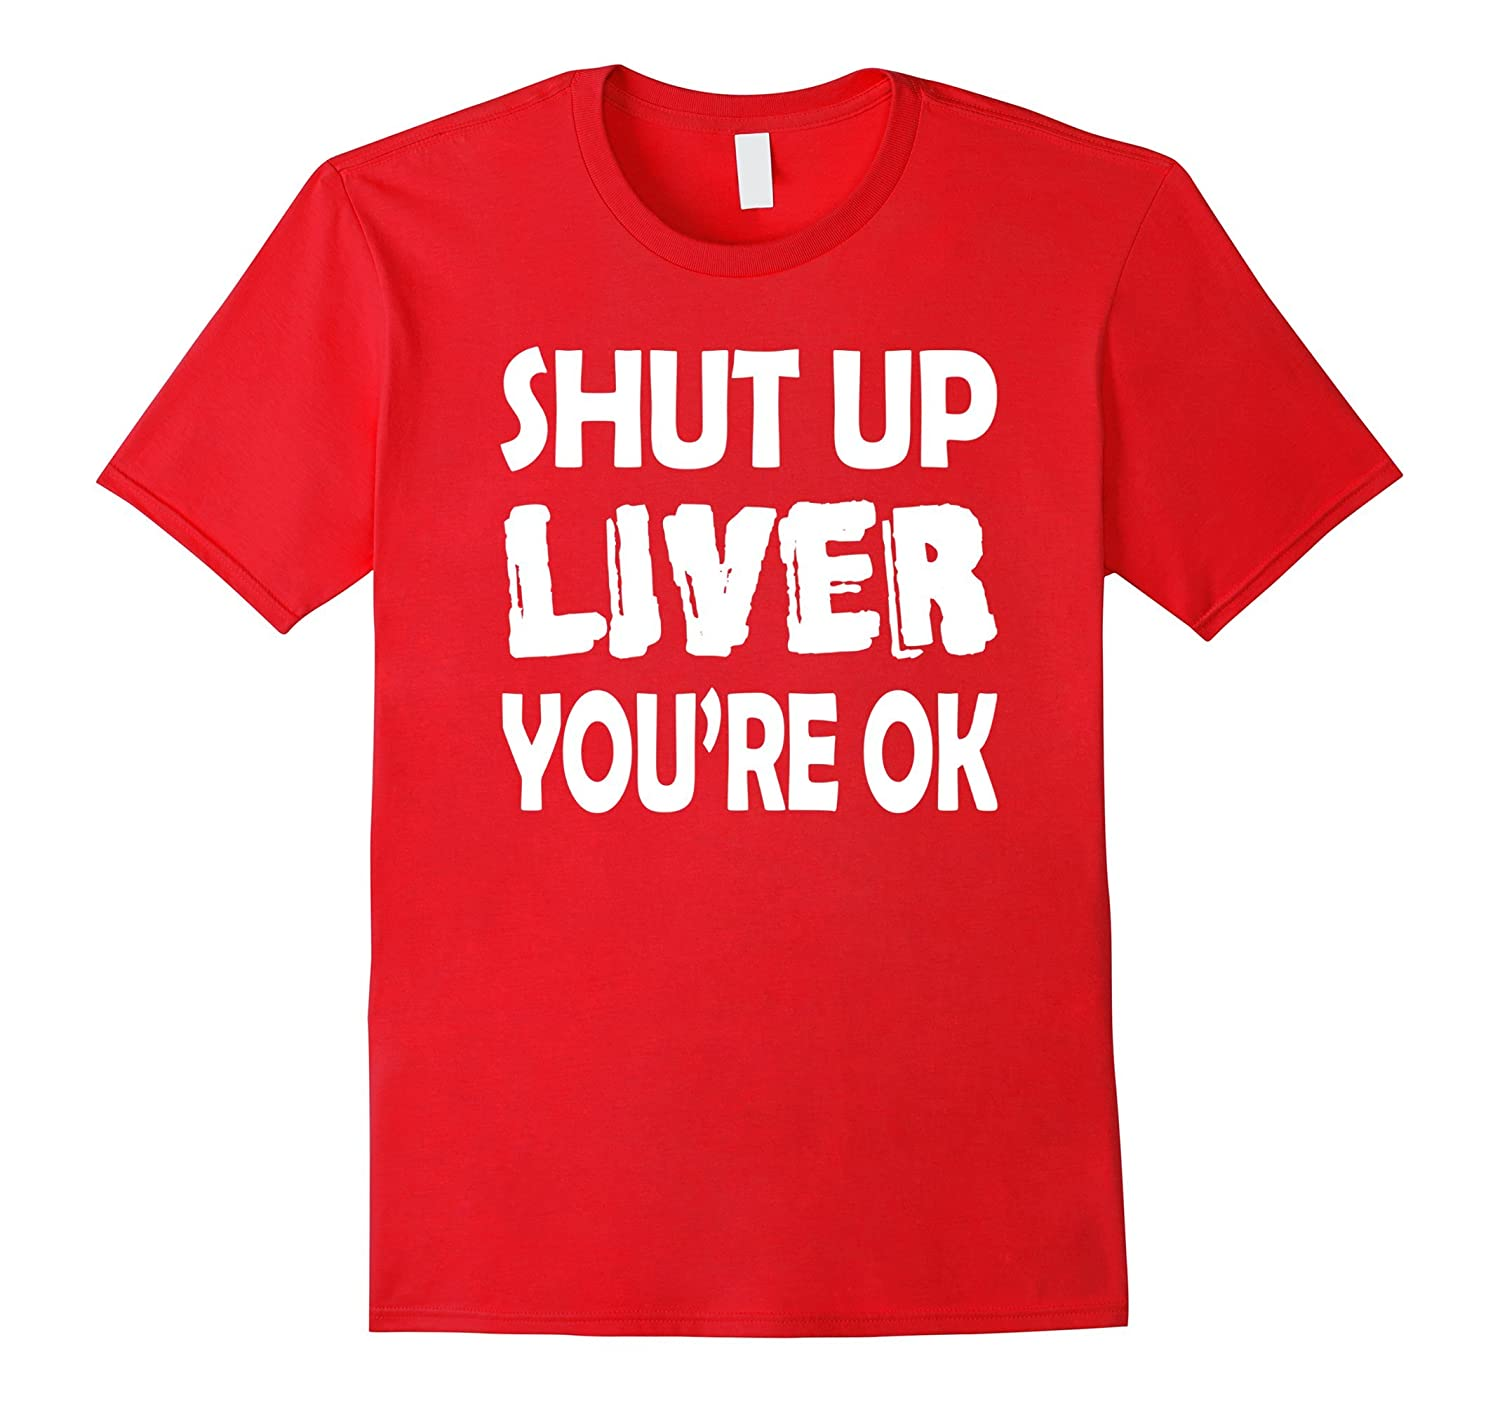 Funny Shut Up Liver You're OK Tshirt – Party Tee